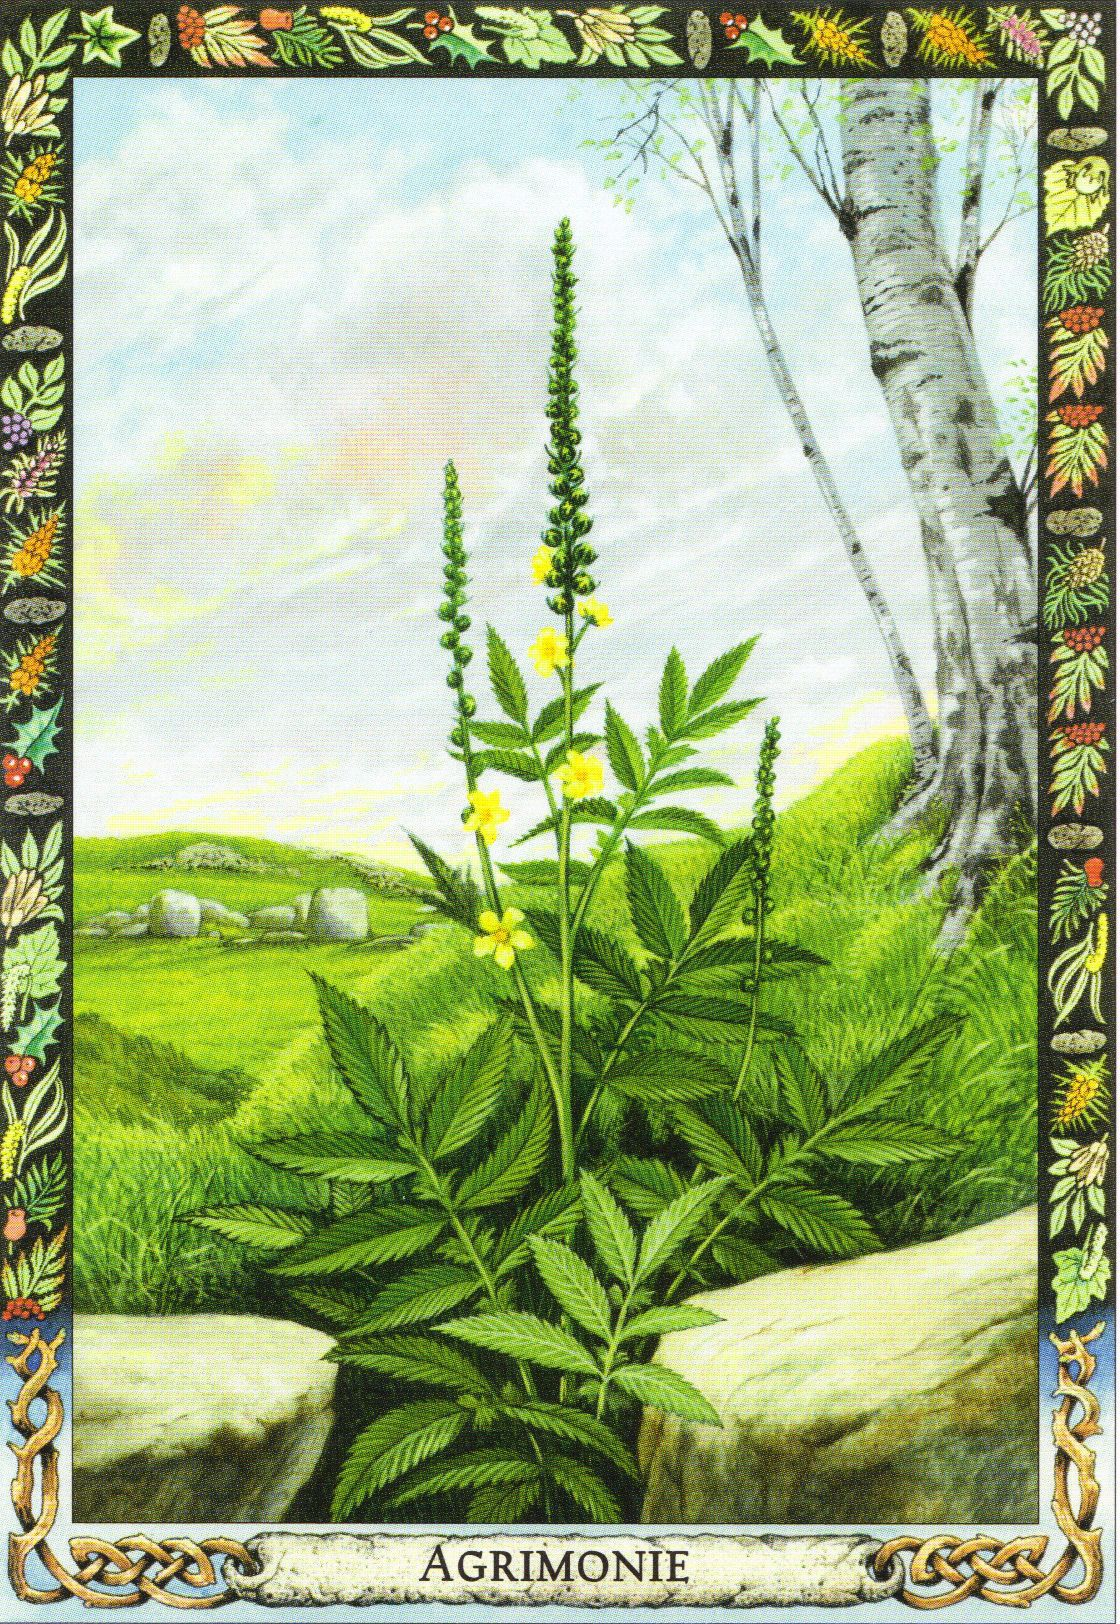 Agrimony | Druid Plant Oracle by Philip and Stephanie Carr | Illustrated by Will Worthington | Meaning: cleansing, liberation and preparation for a new beginning | Reversed: unhealthy attachment, worry and listlessness